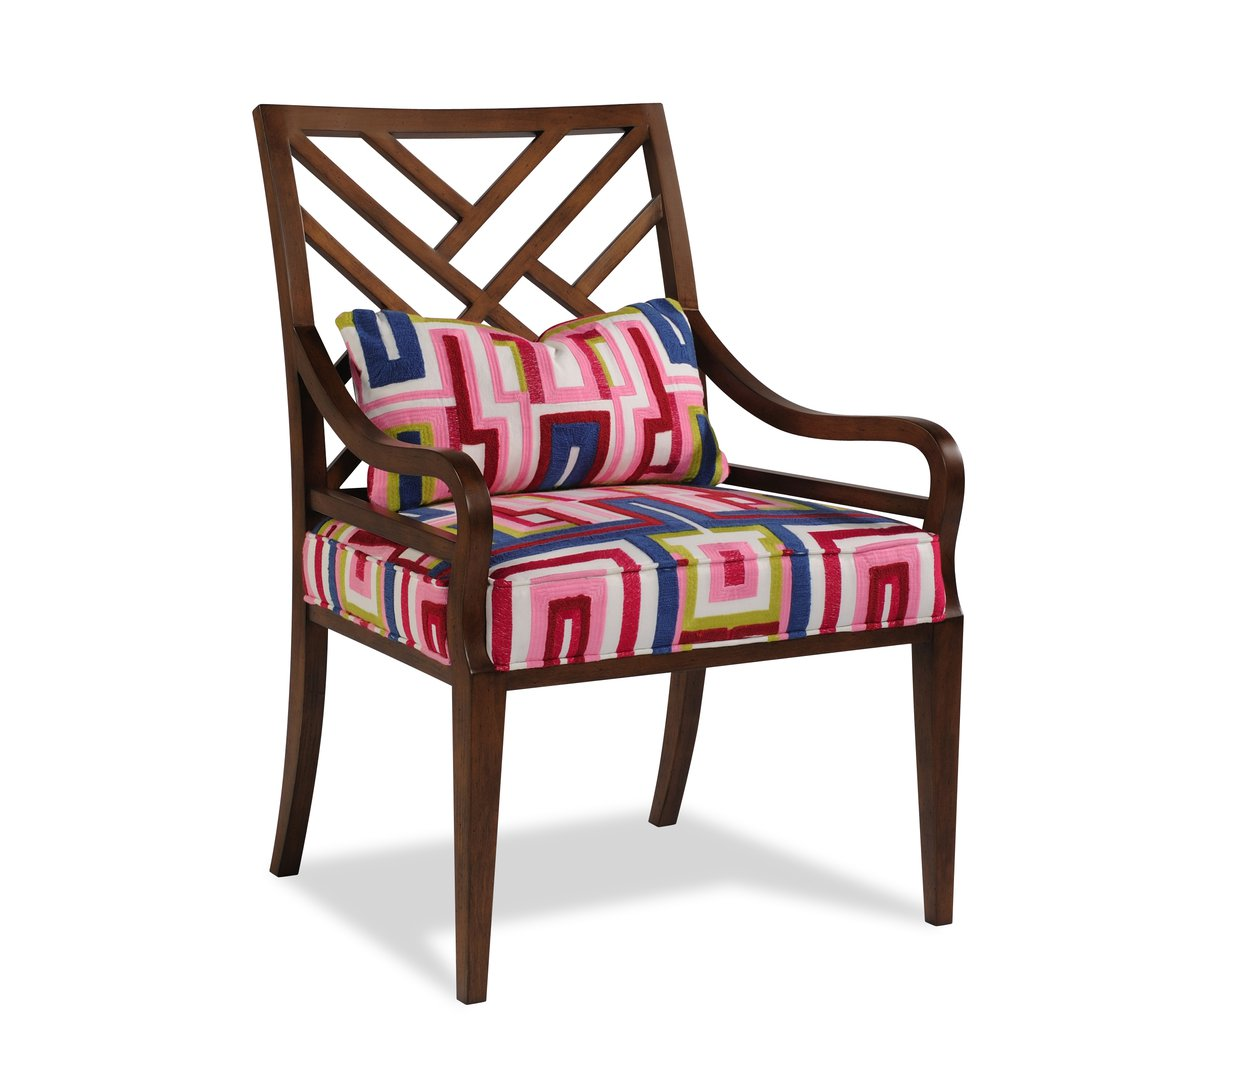 Kensington Chair Image